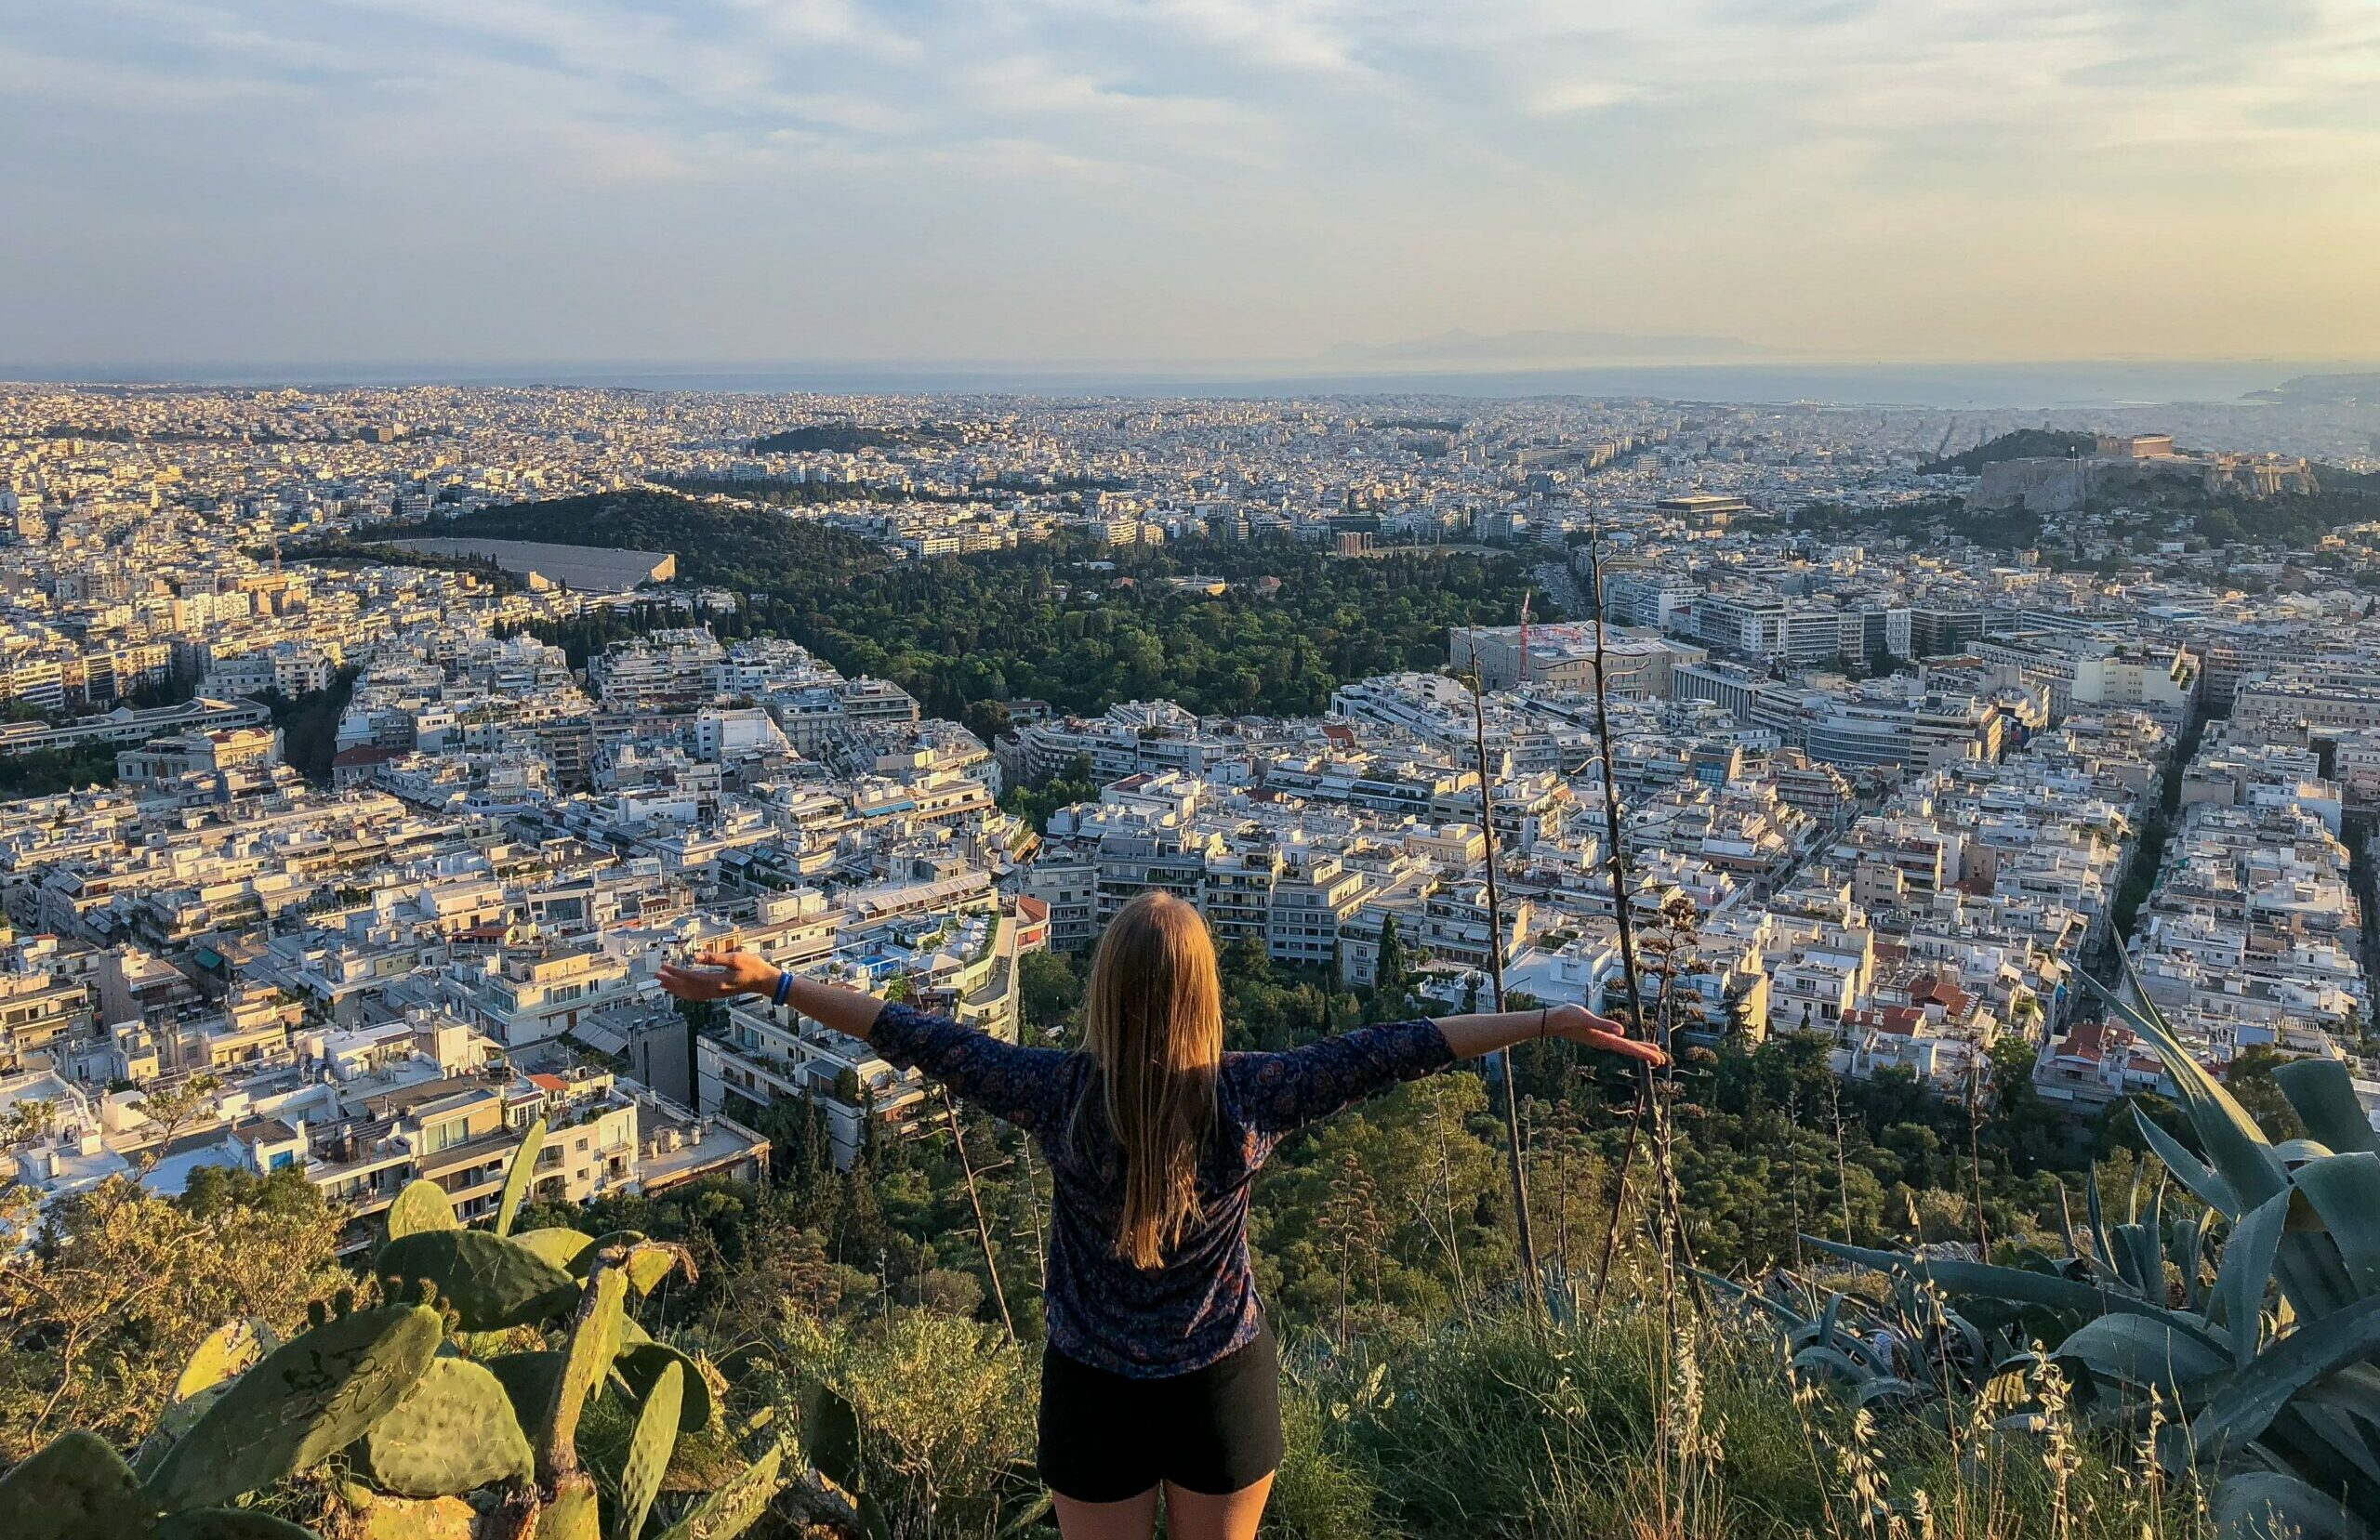 Athens: its place among the world's 500 most innovative cities